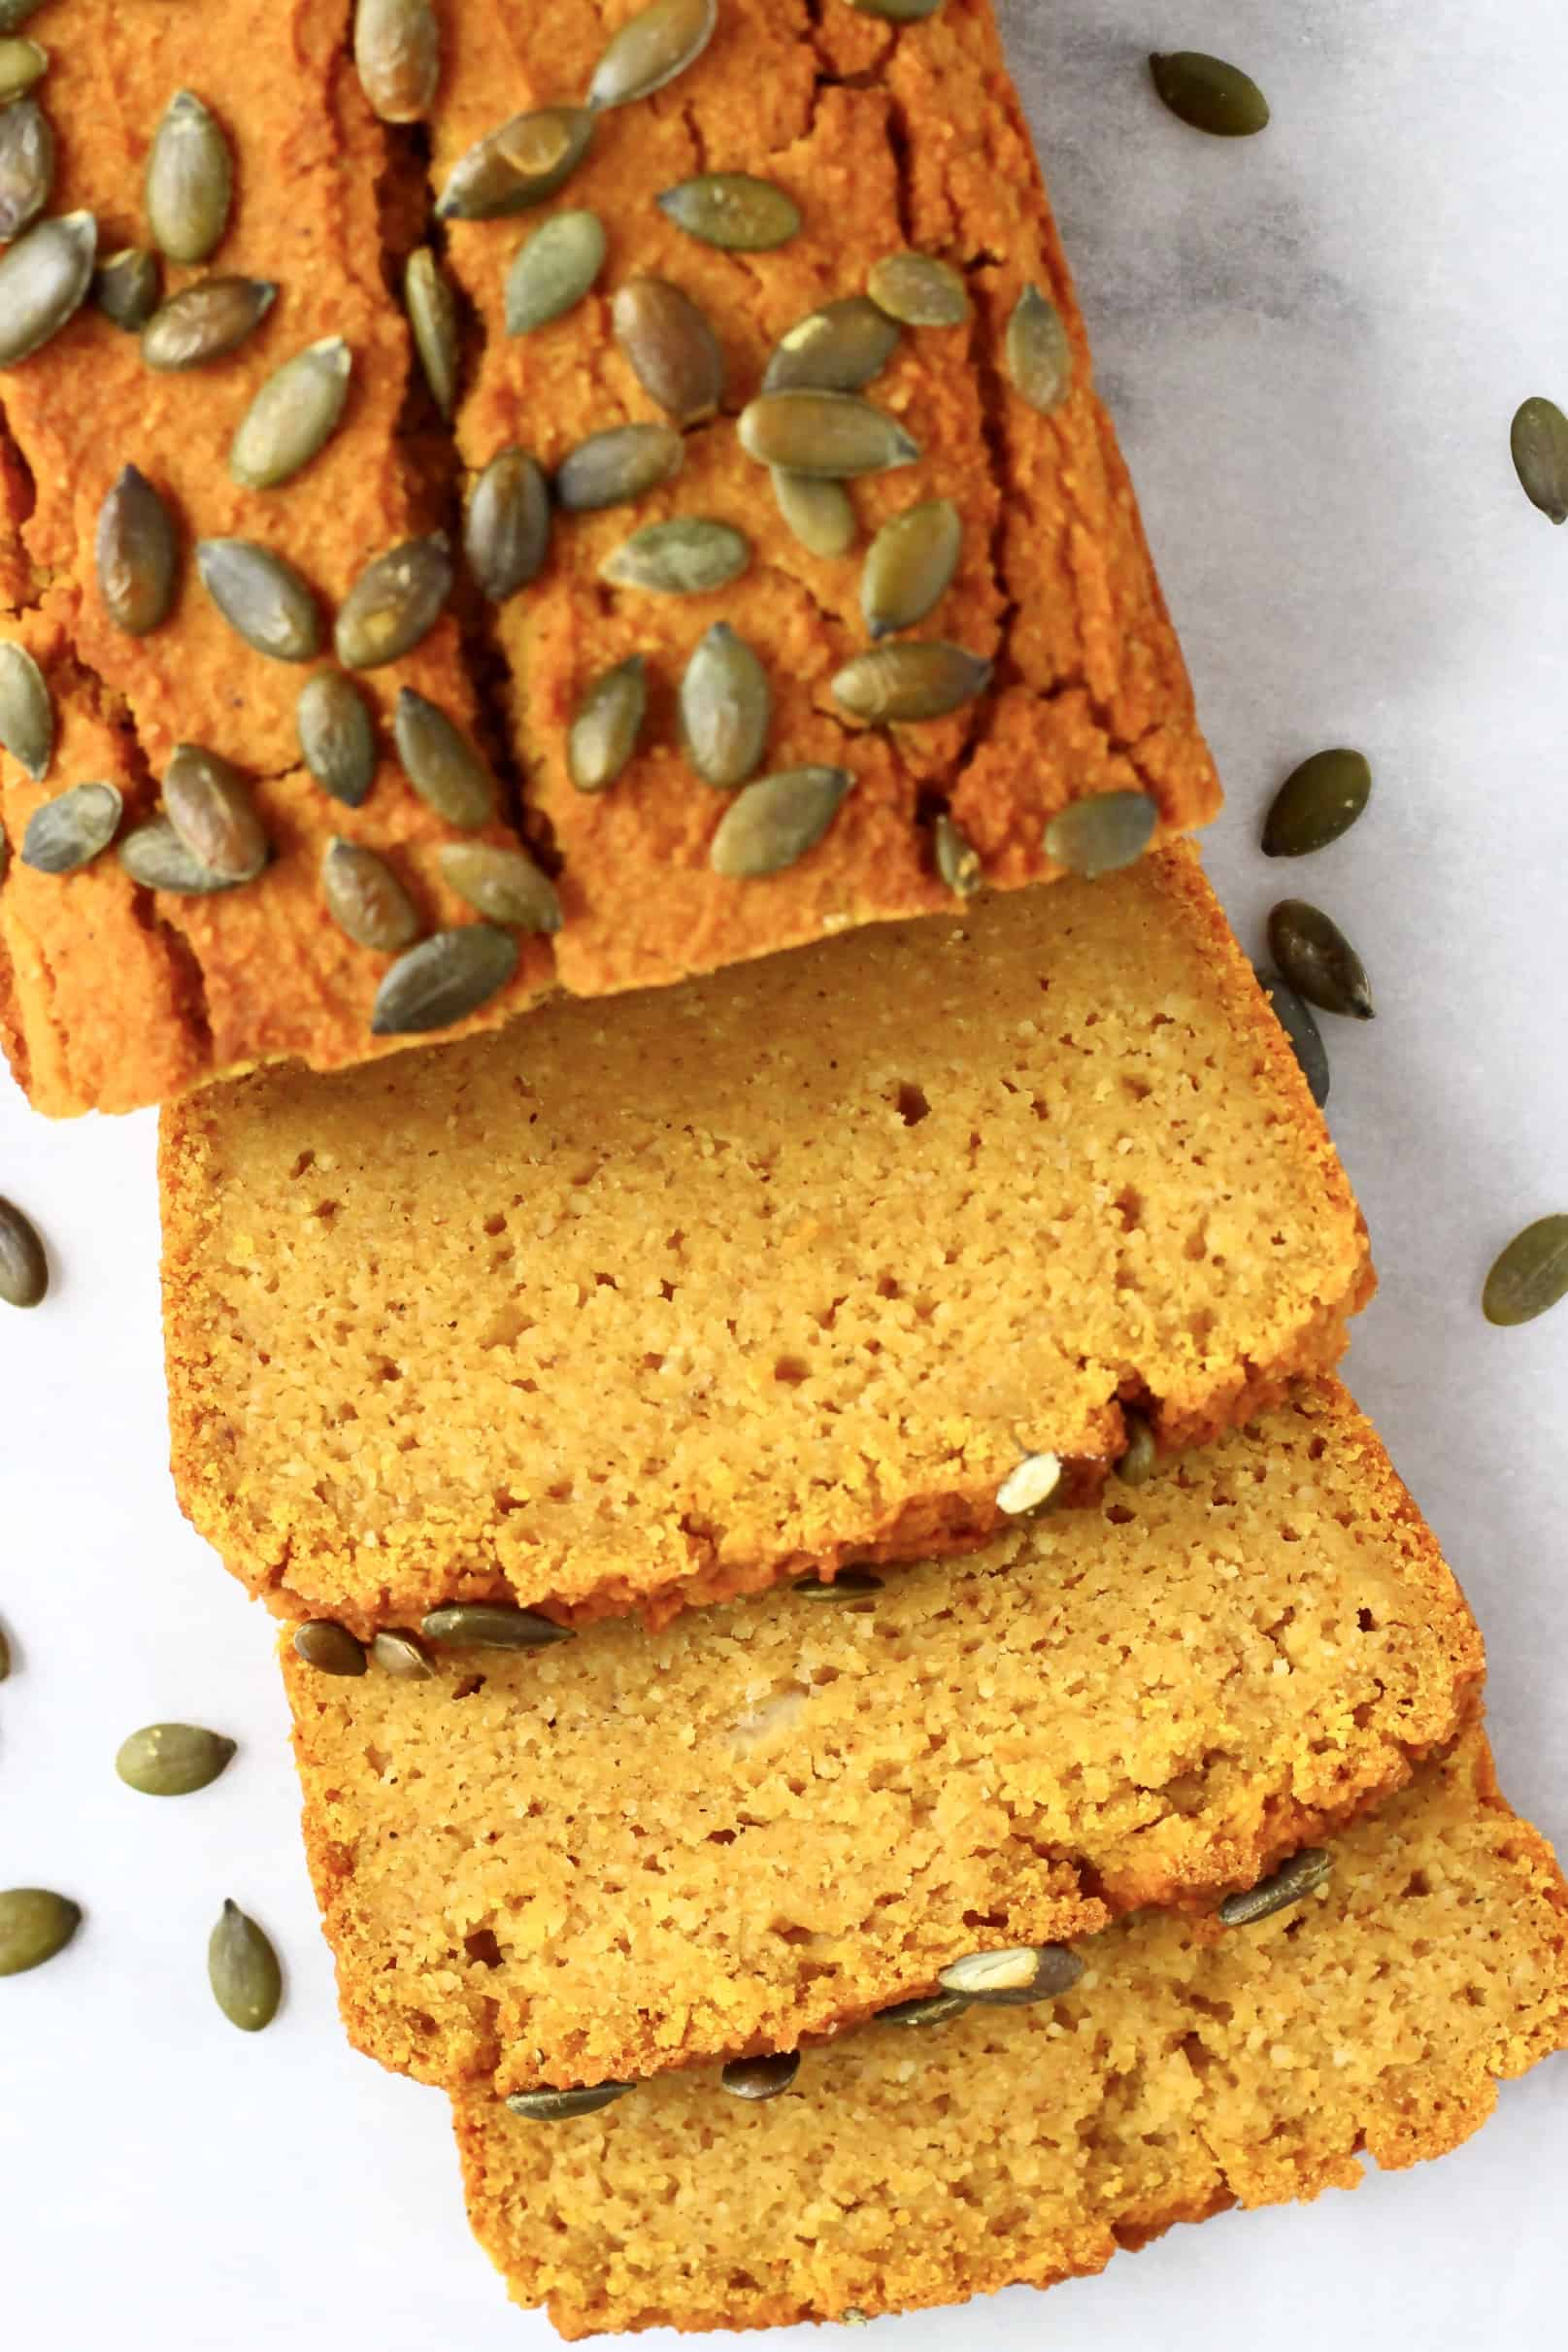 A loaf of gluten-free vegan pumpkin bread with three slices next to it